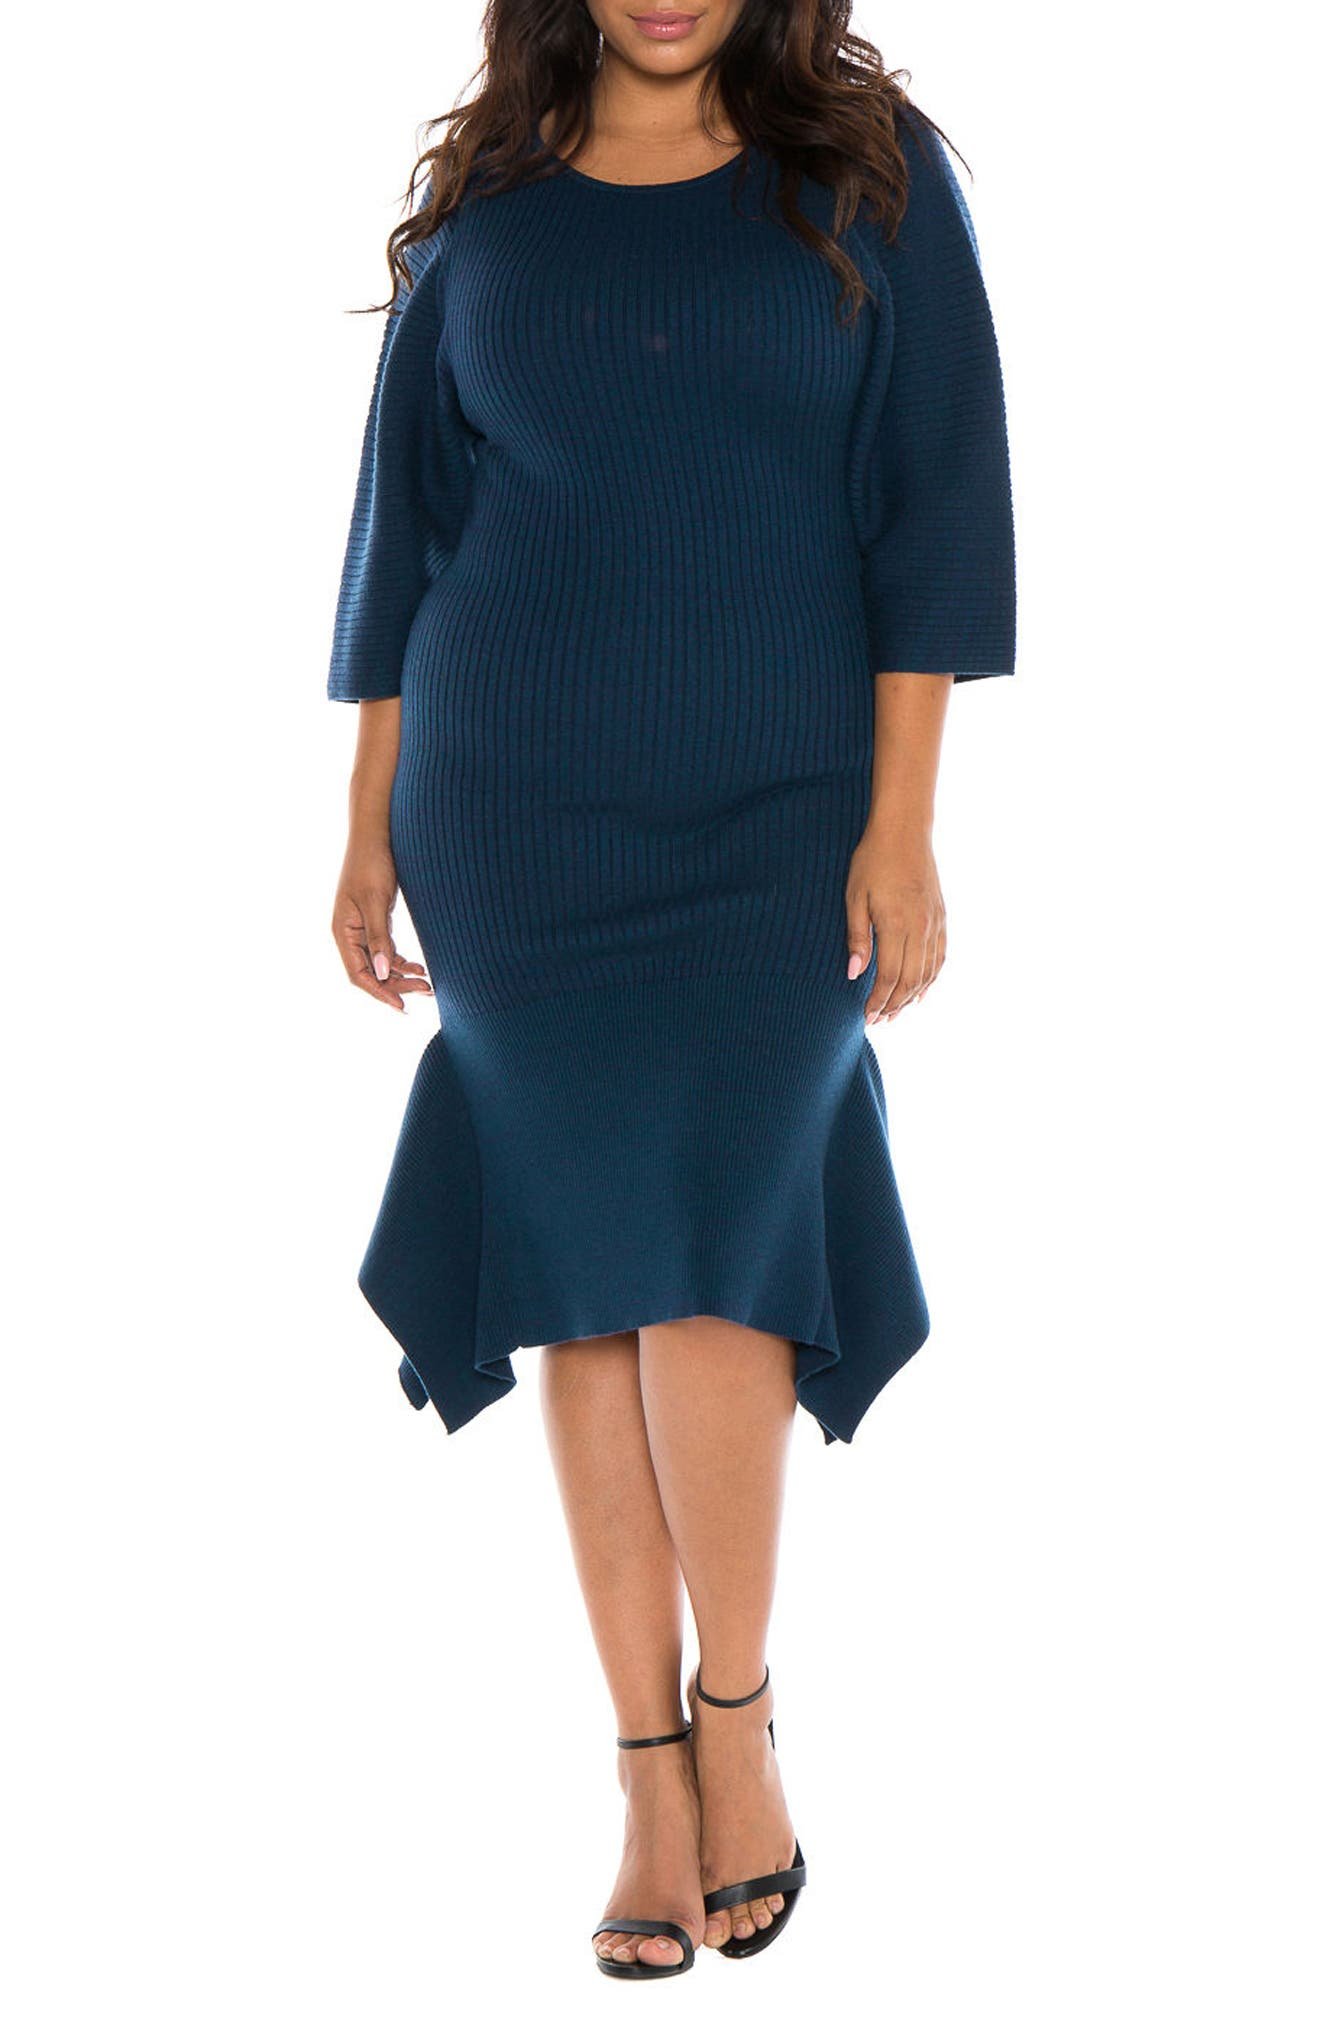 Plus Size Slink Jeans Handkerchief Hem Sweater Dress